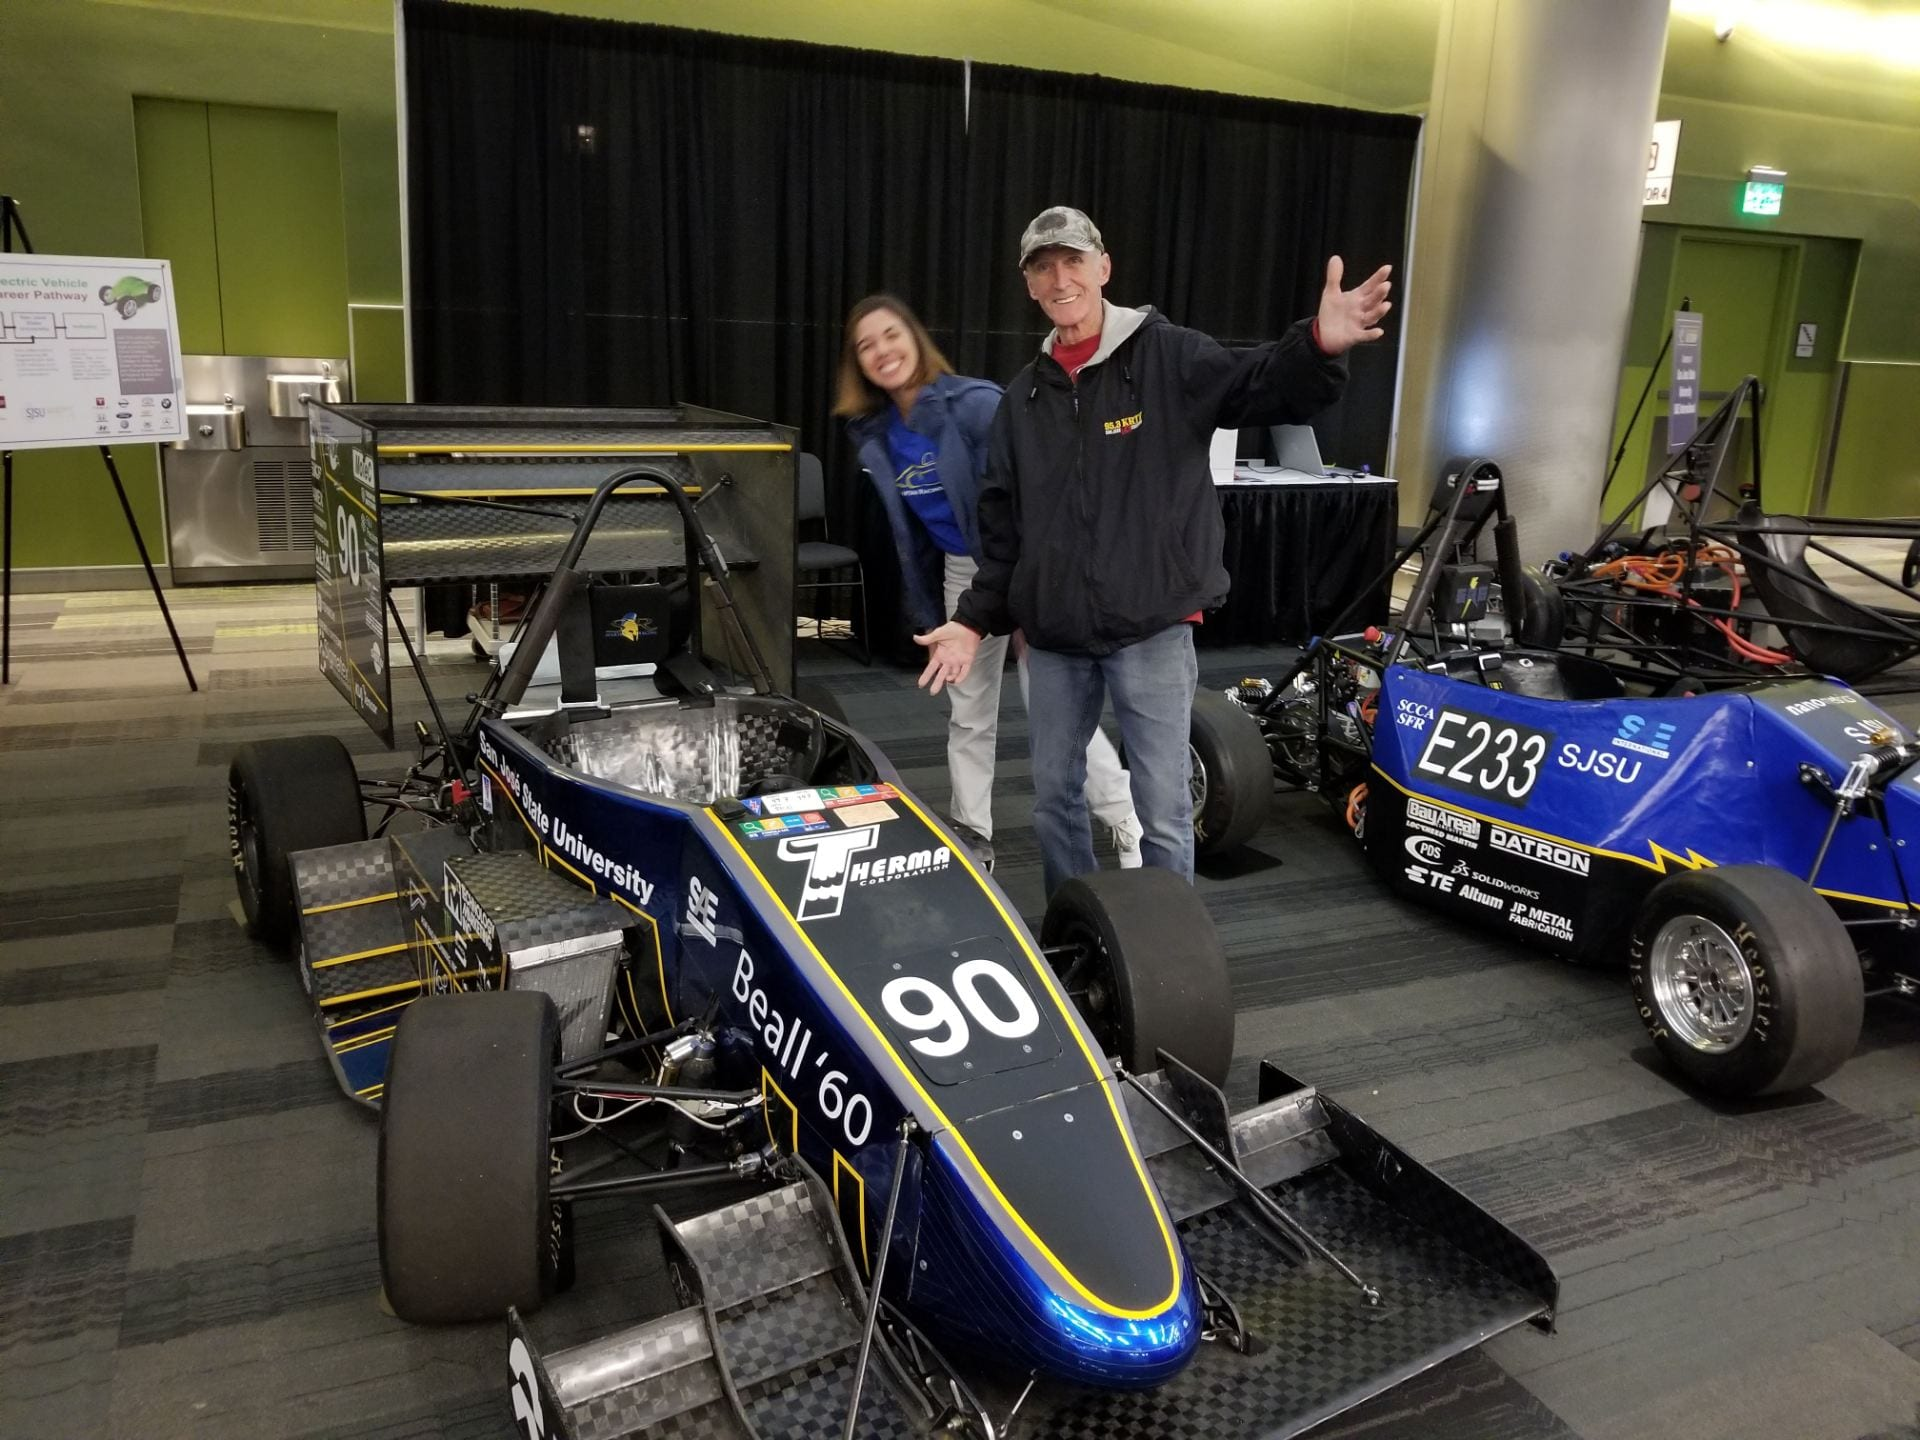 Visitors to the Silicon Valley Auto Show look at SJSU Formula SAE racing cars. Photo courtesy of the Charles W. Davidson College of Engineering.